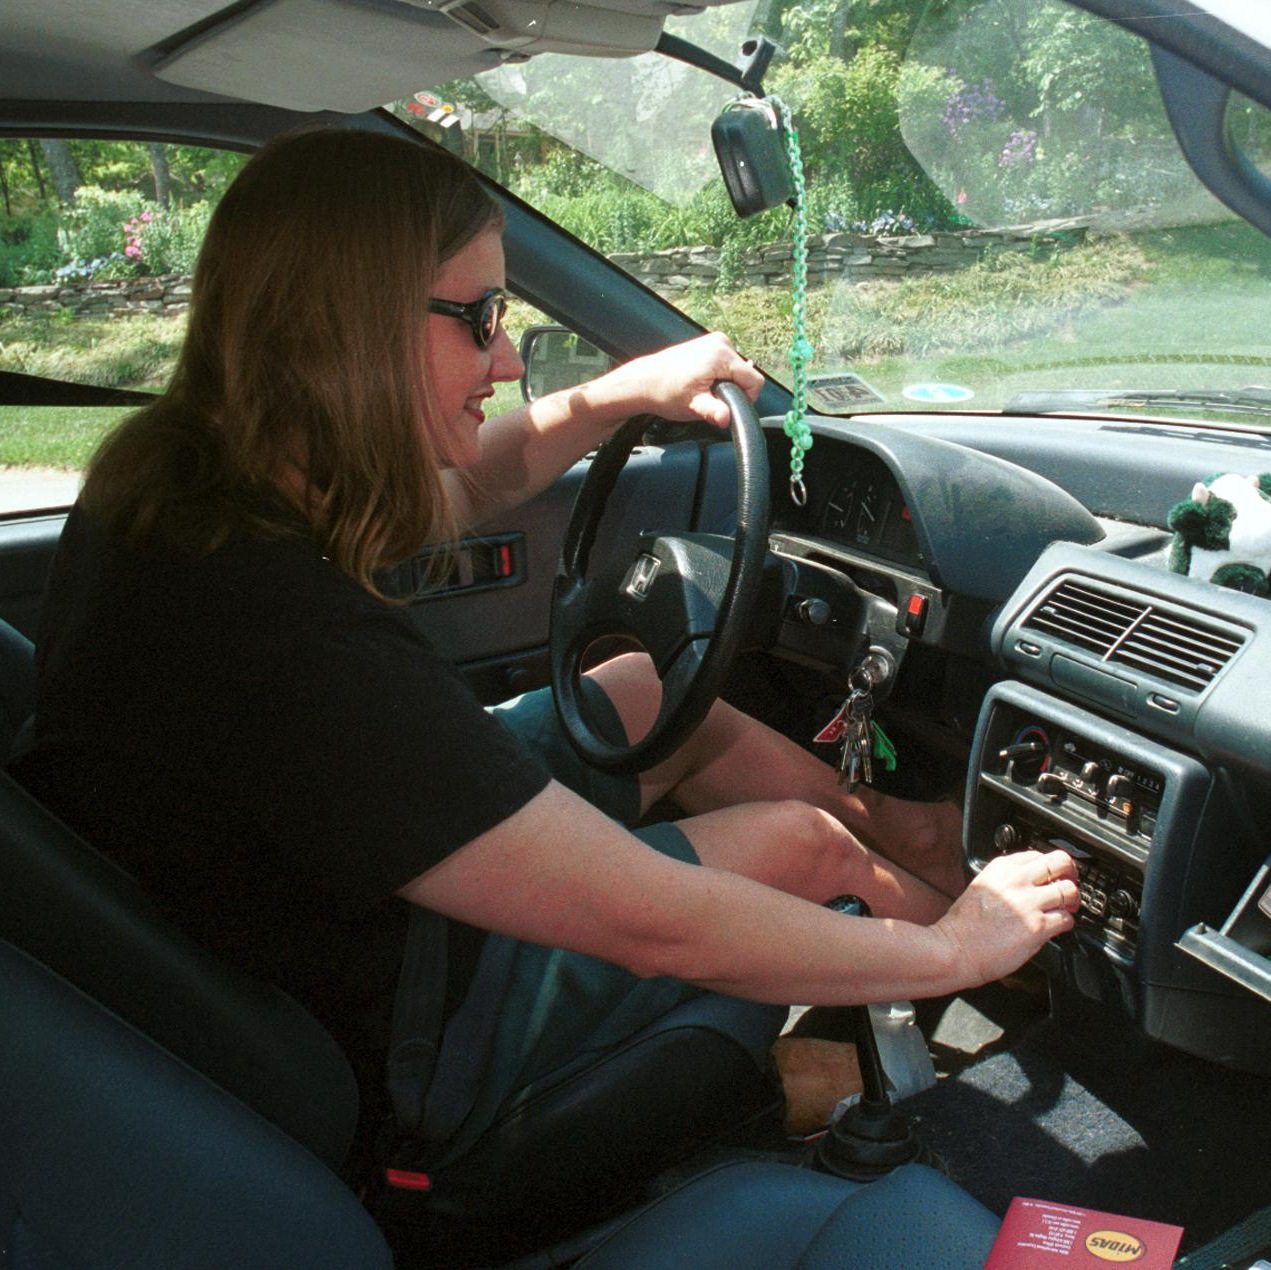 Distracted driving during the 'dangerous' holidays